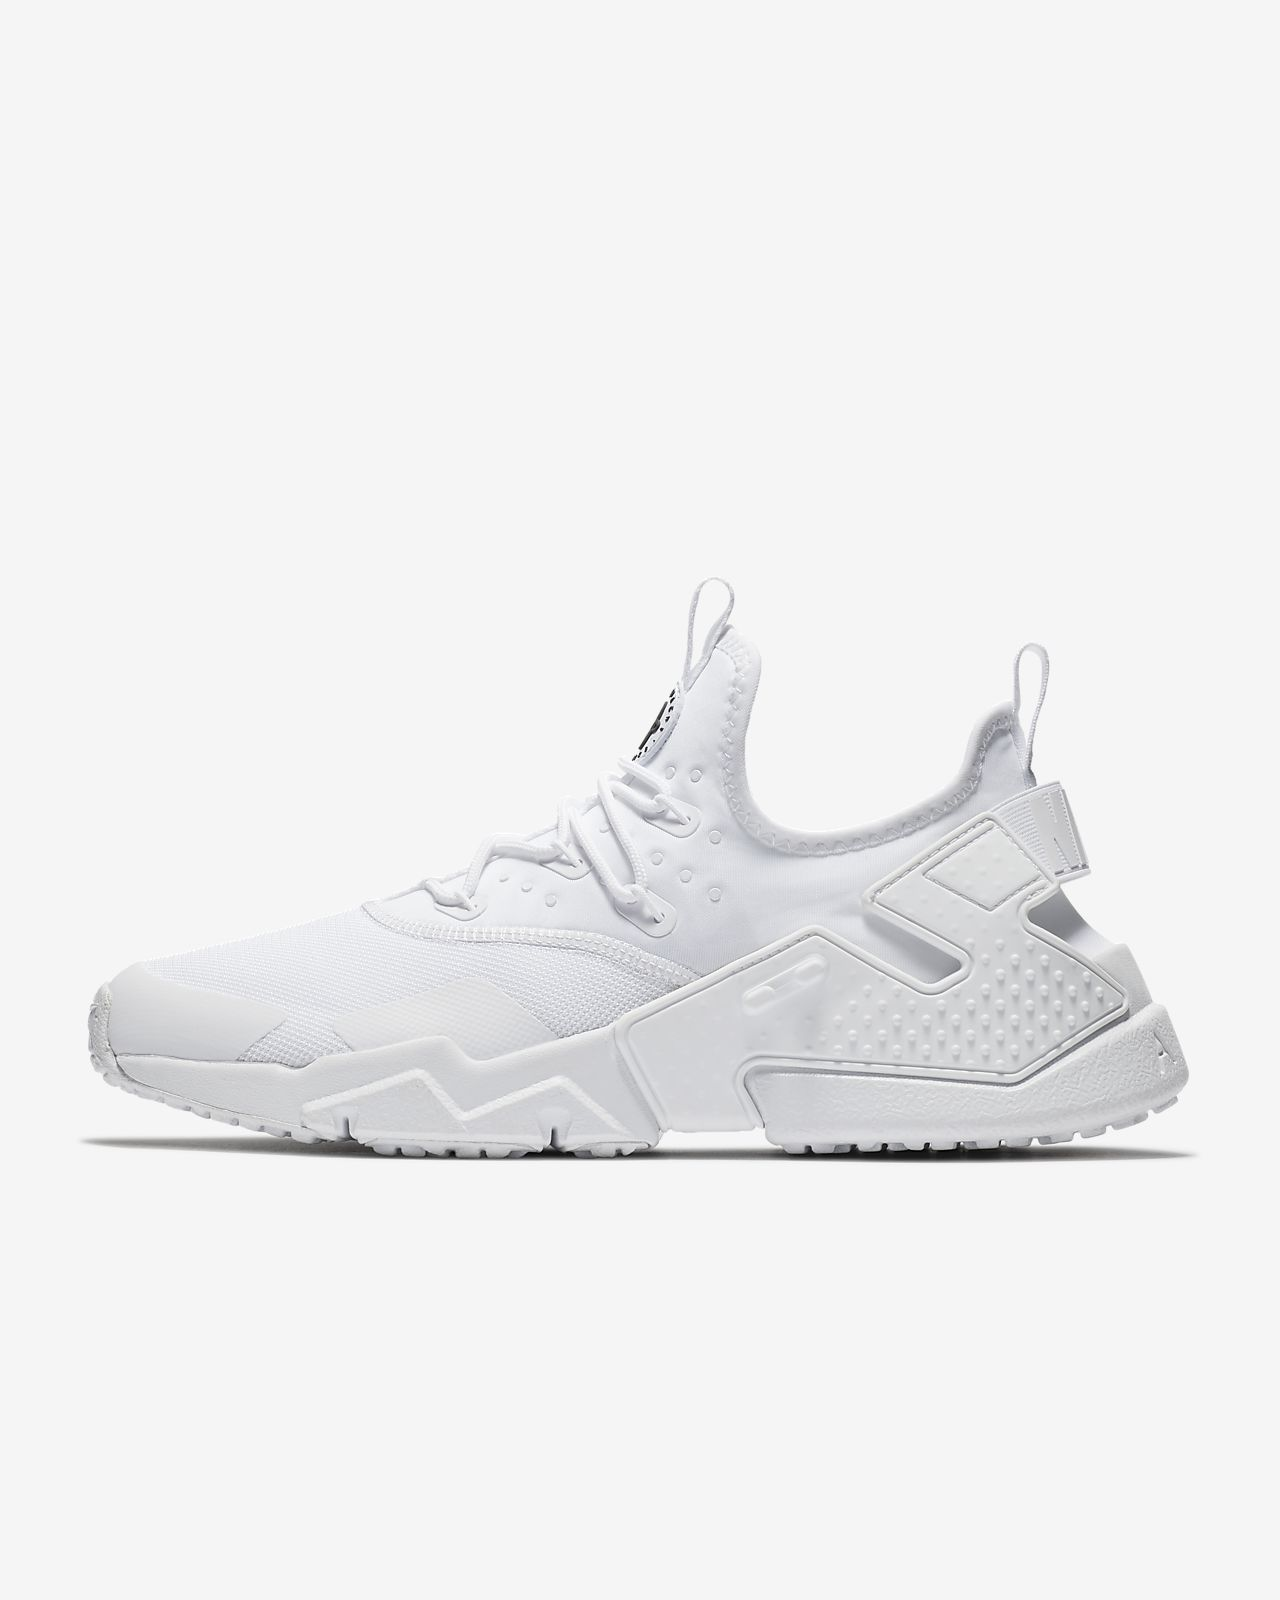 official photos 40ec1 f1a20 ... Nike Air Huarache Drift Men s Shoe